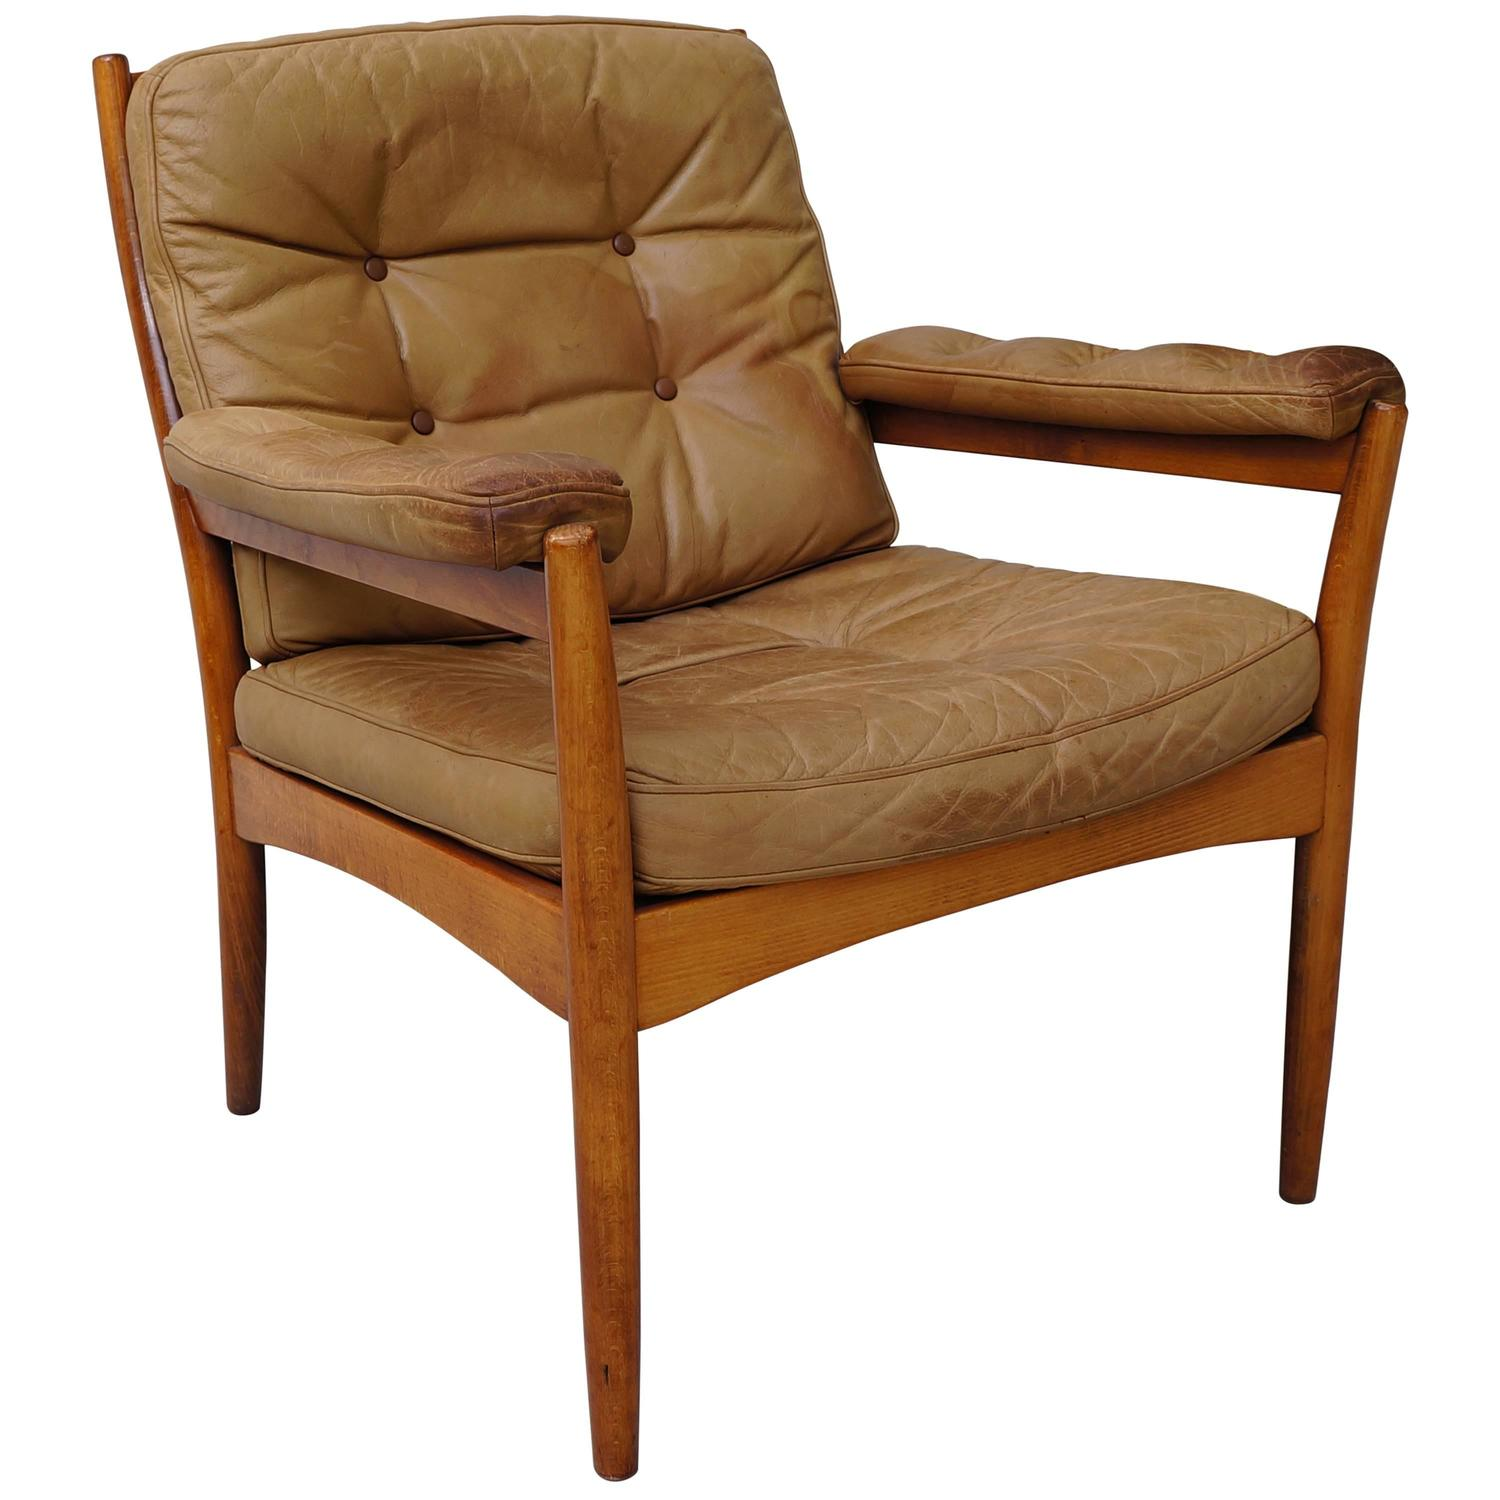 Göte Möbler Sweden Leather Wooden Lounge Chair at 1stdibs